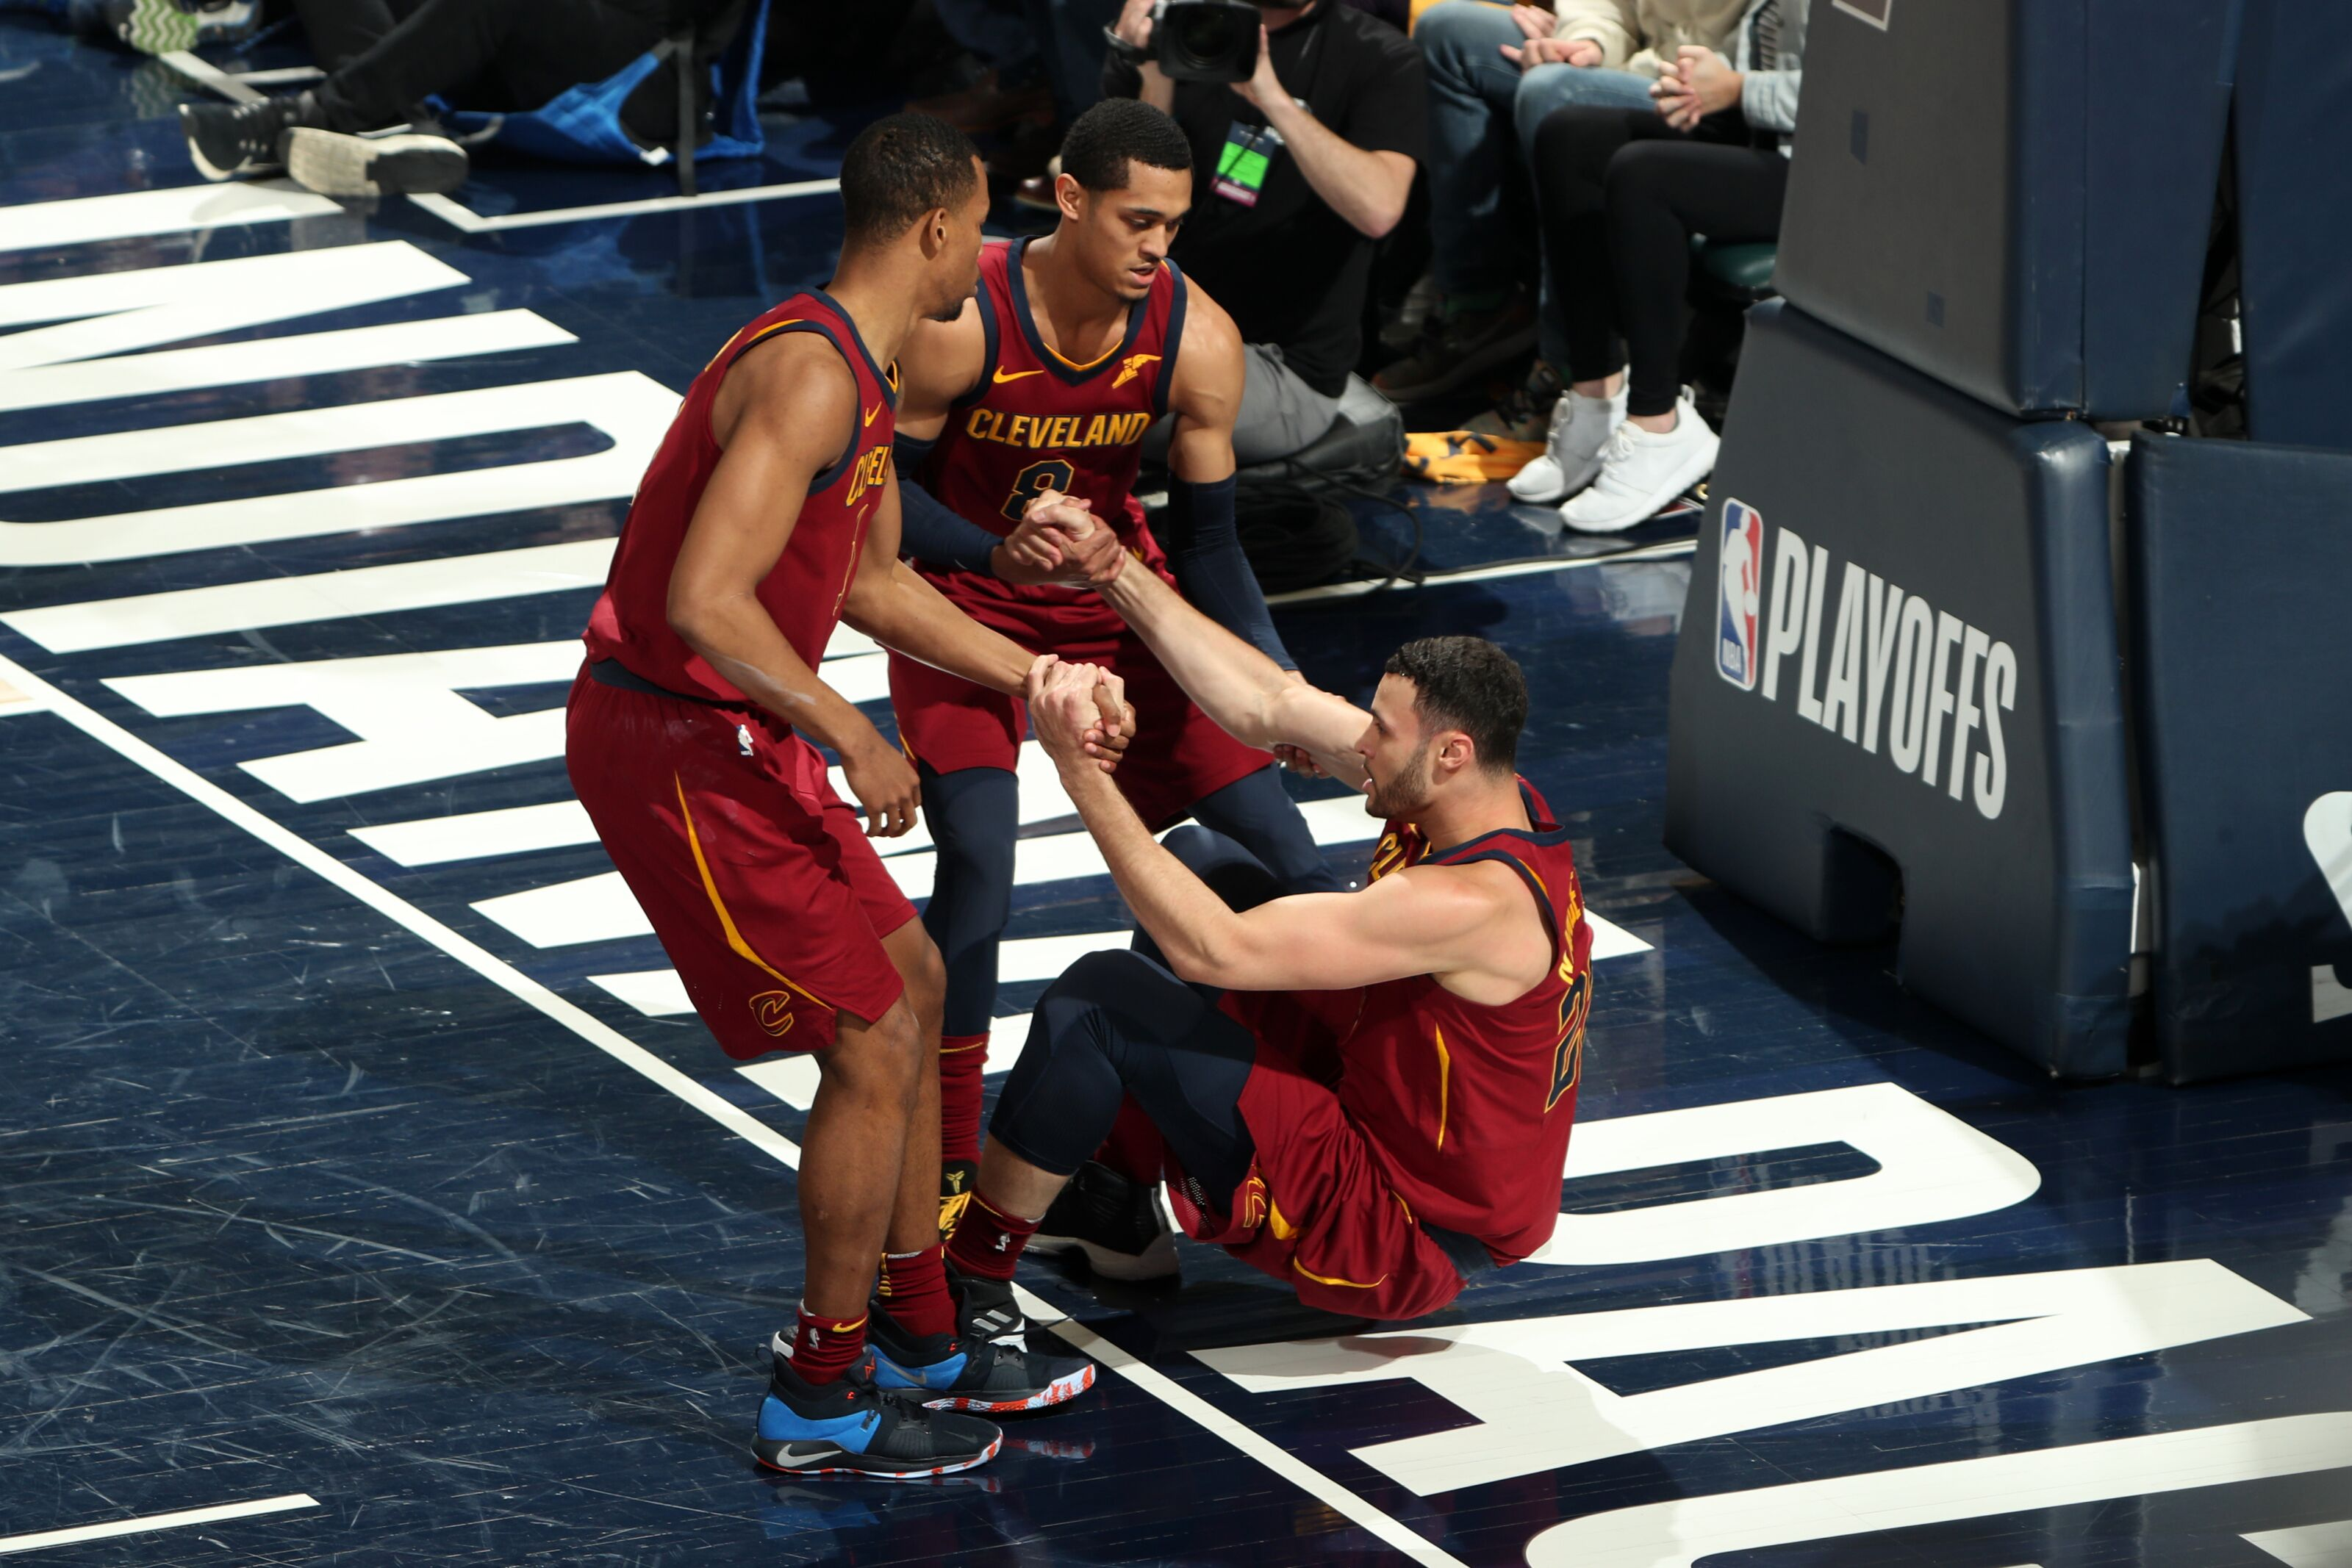 950125004-cleveland-cavaliers-v-indiana-pacers-game-four.jpg